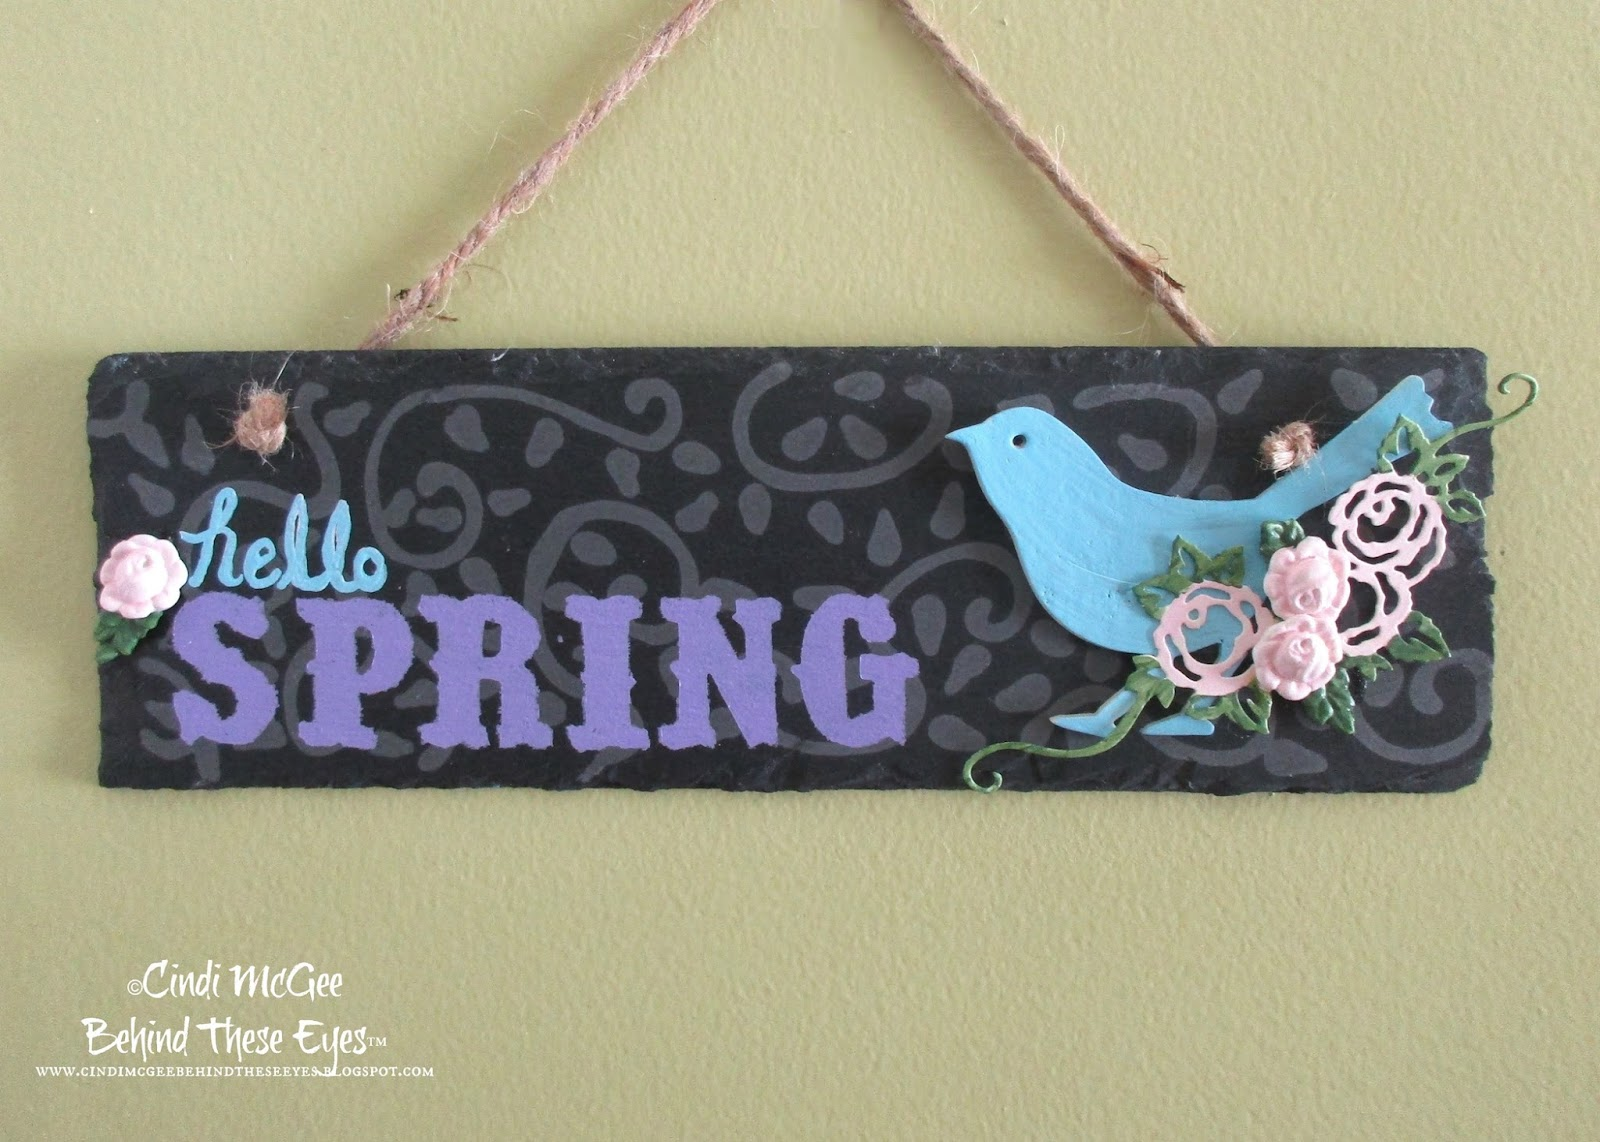 Hello Spring Decorative Slate by Cindi Bisson McGee